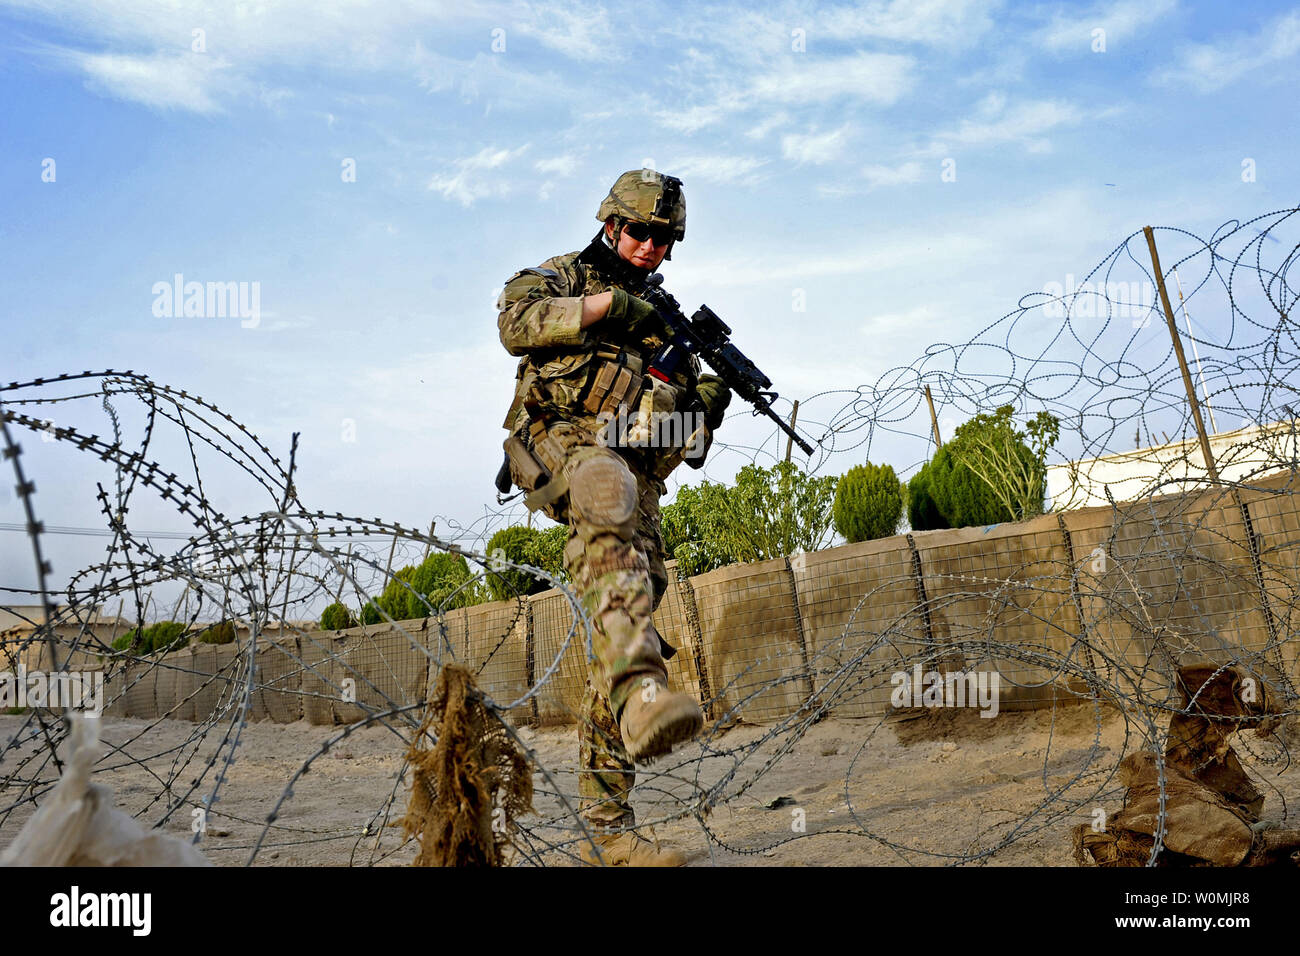 U.S. Air Force Airman 1st Class Steven Armenta patrols through Qalat City, Afghanistan, on Aug. 9, 2011.  Armenta is a member of Provincial Reconstruction Team Zabul's security force.  UPI/Grovert Fuentes-Contreras/USAF Stock Photo